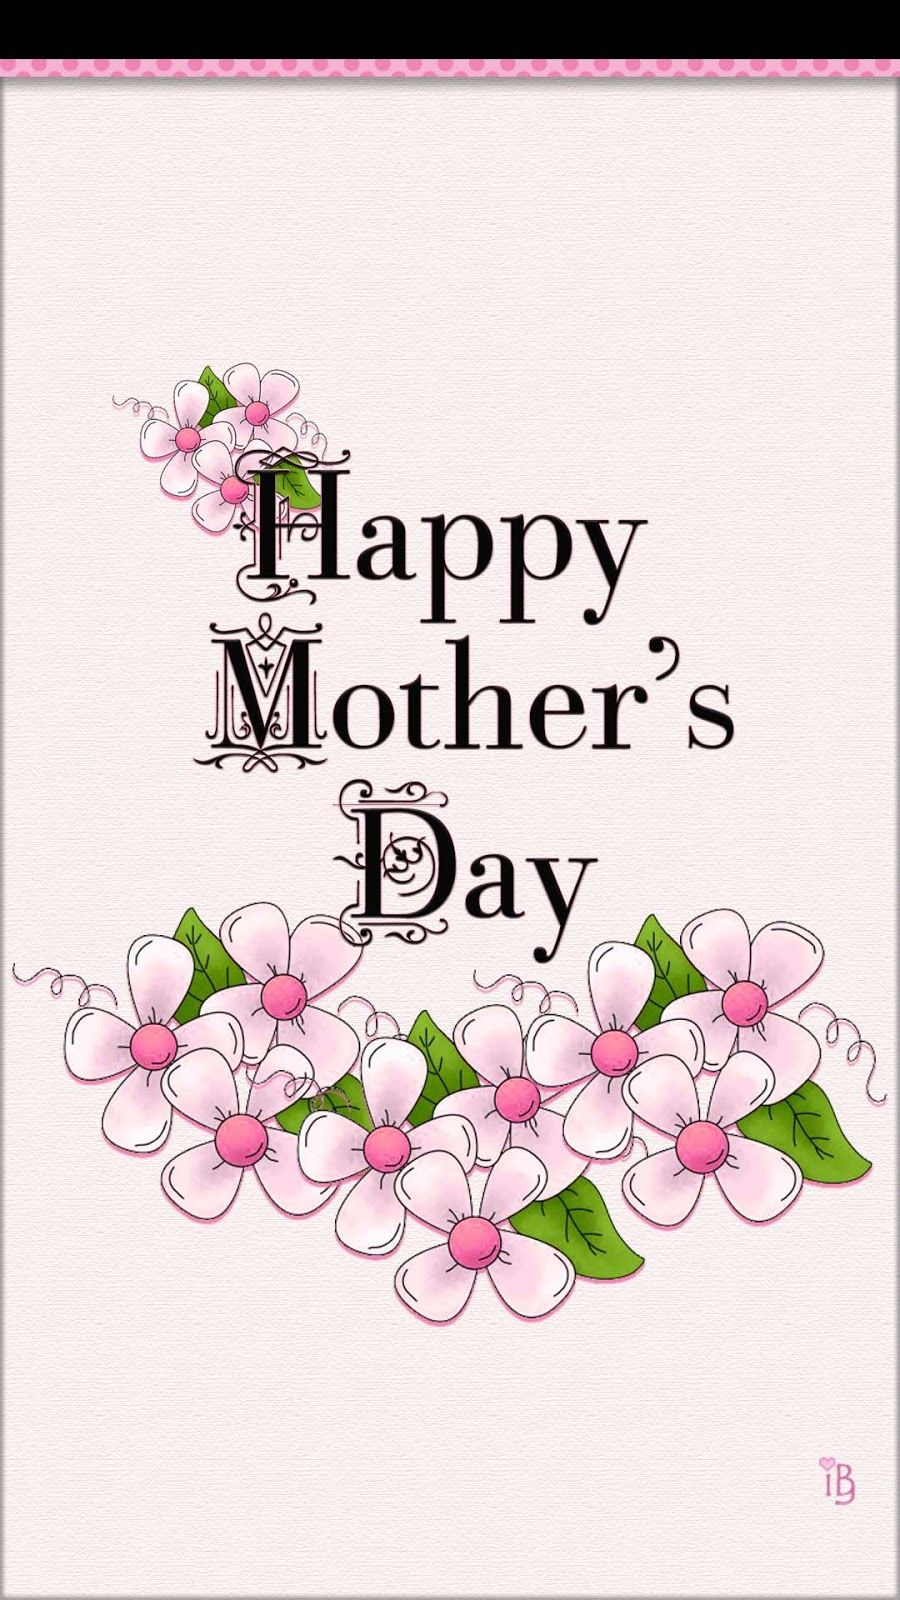 Iphone Wall Mother S Day Tjn Mother S Day Background Mothers Day Fathers Day Wallpapers